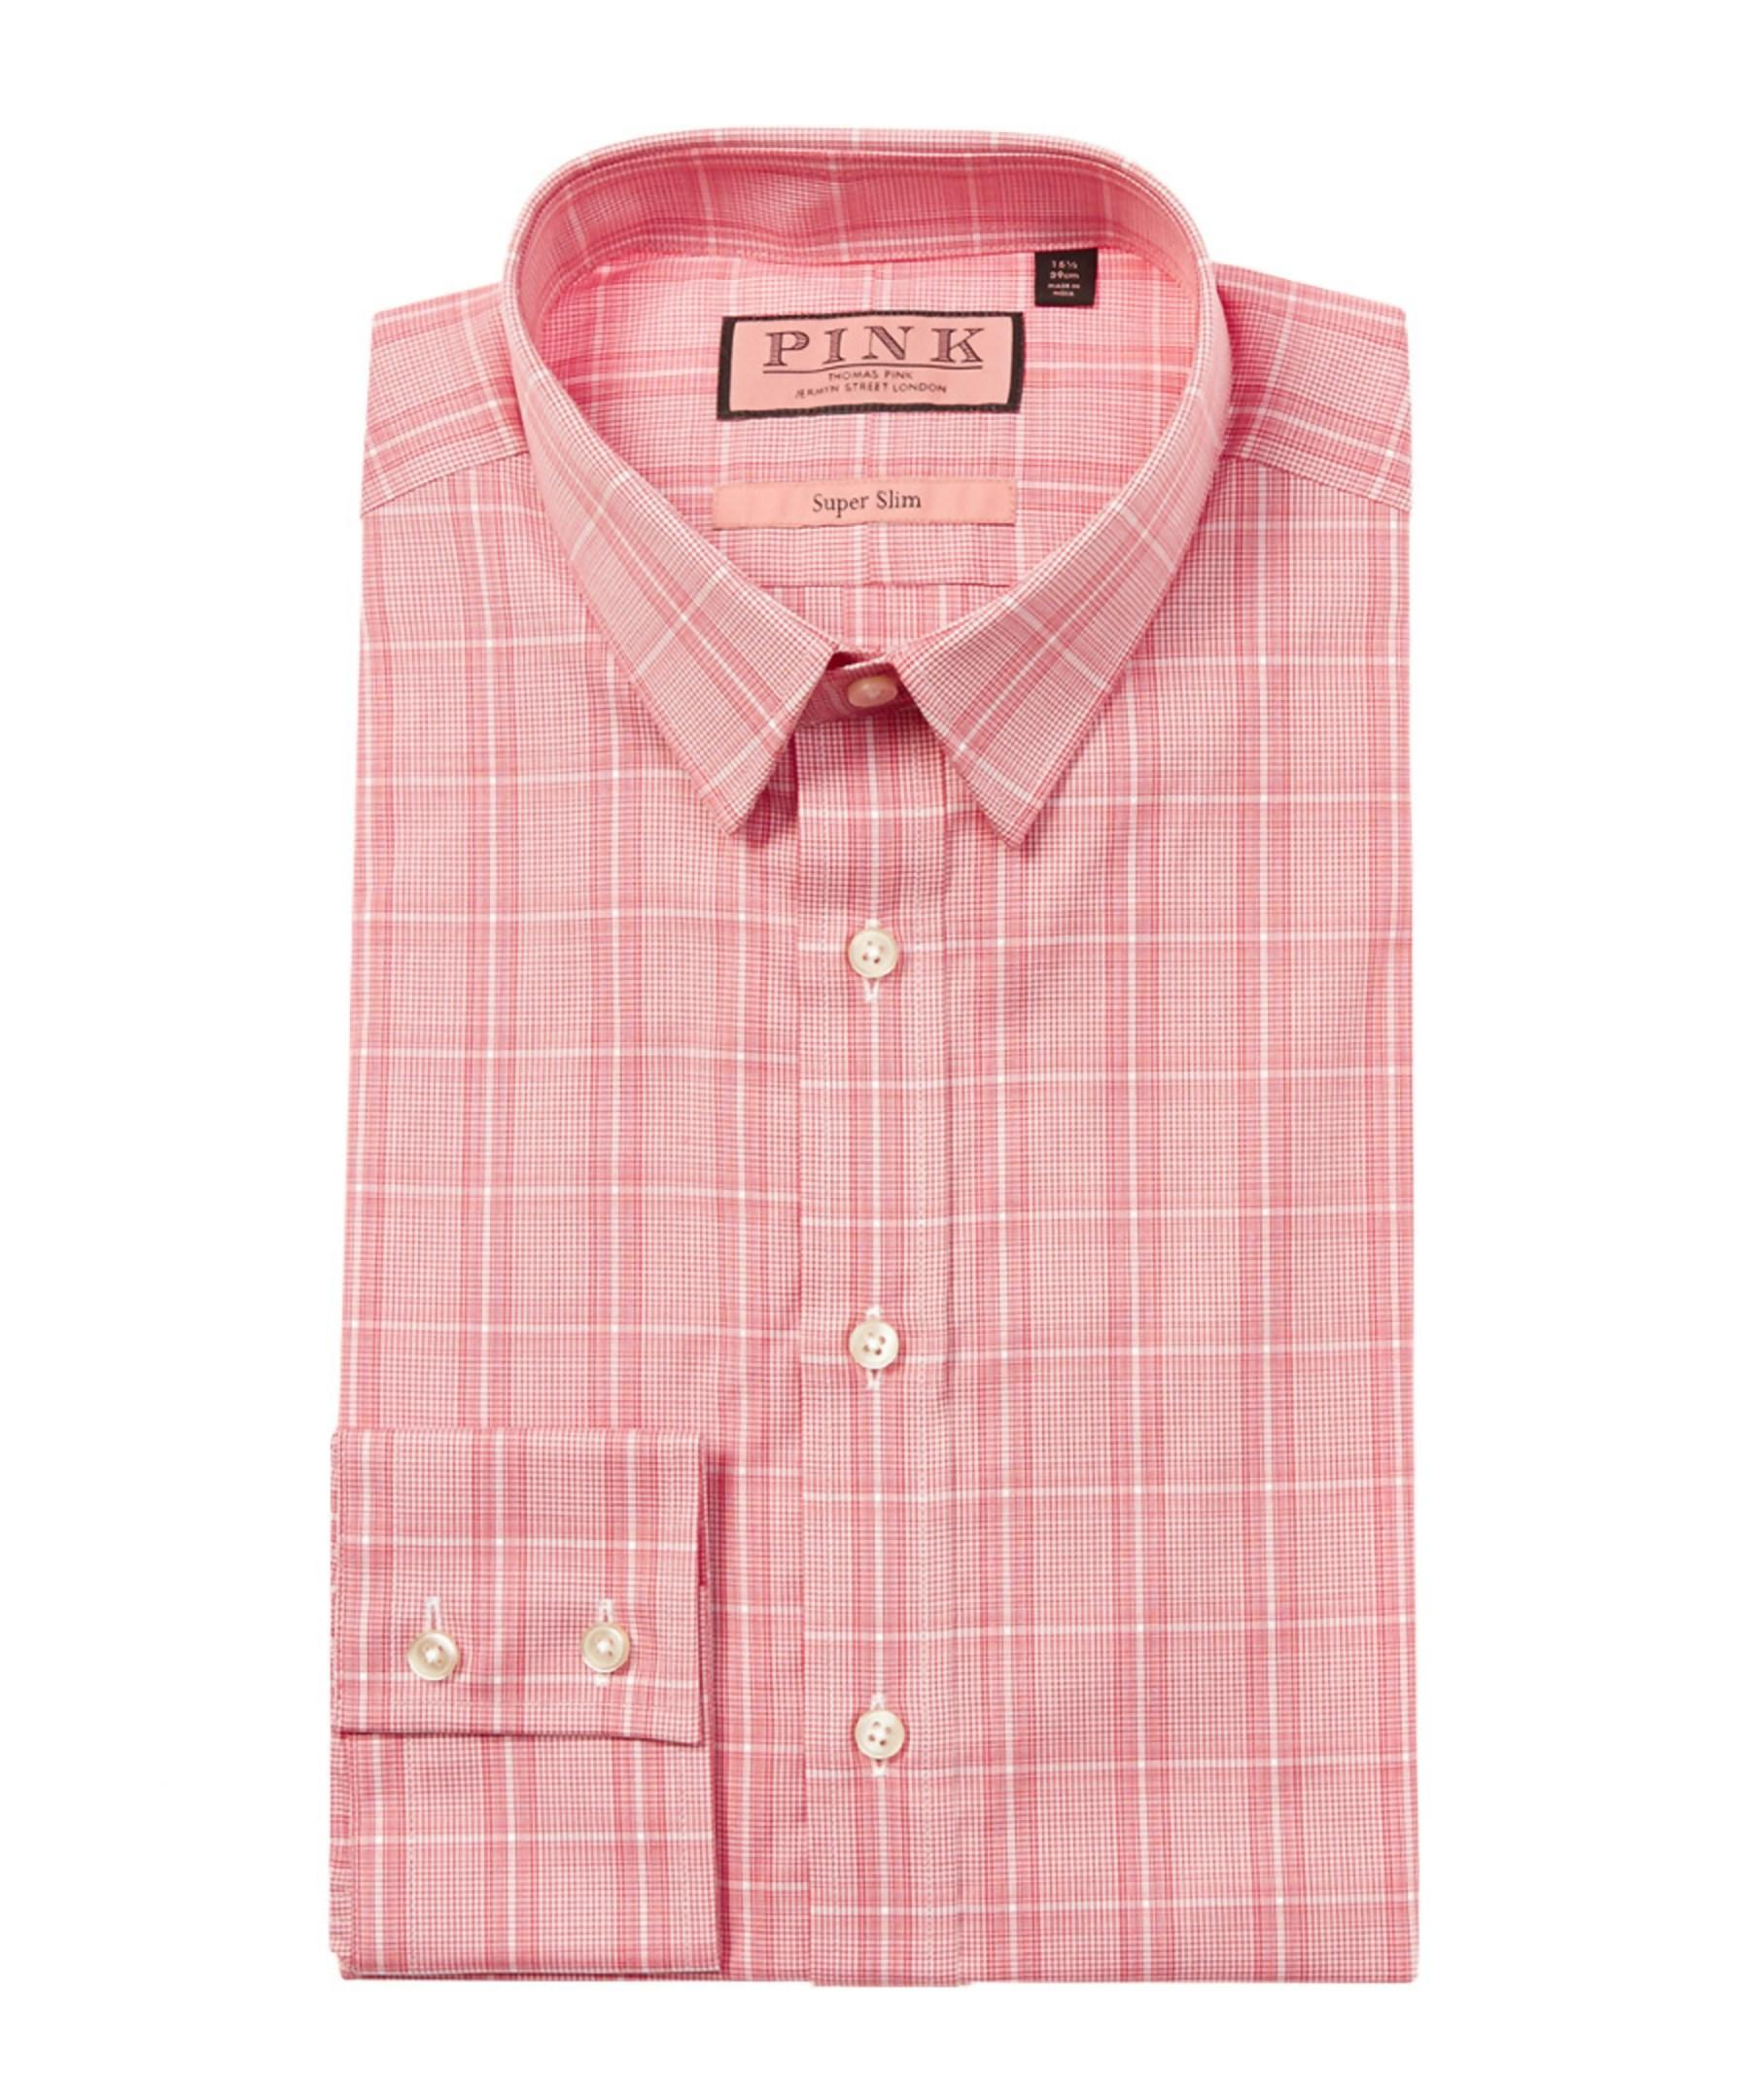 Thomas Pink Super Slim Fit Dress Shirt In Red For Men Lyst